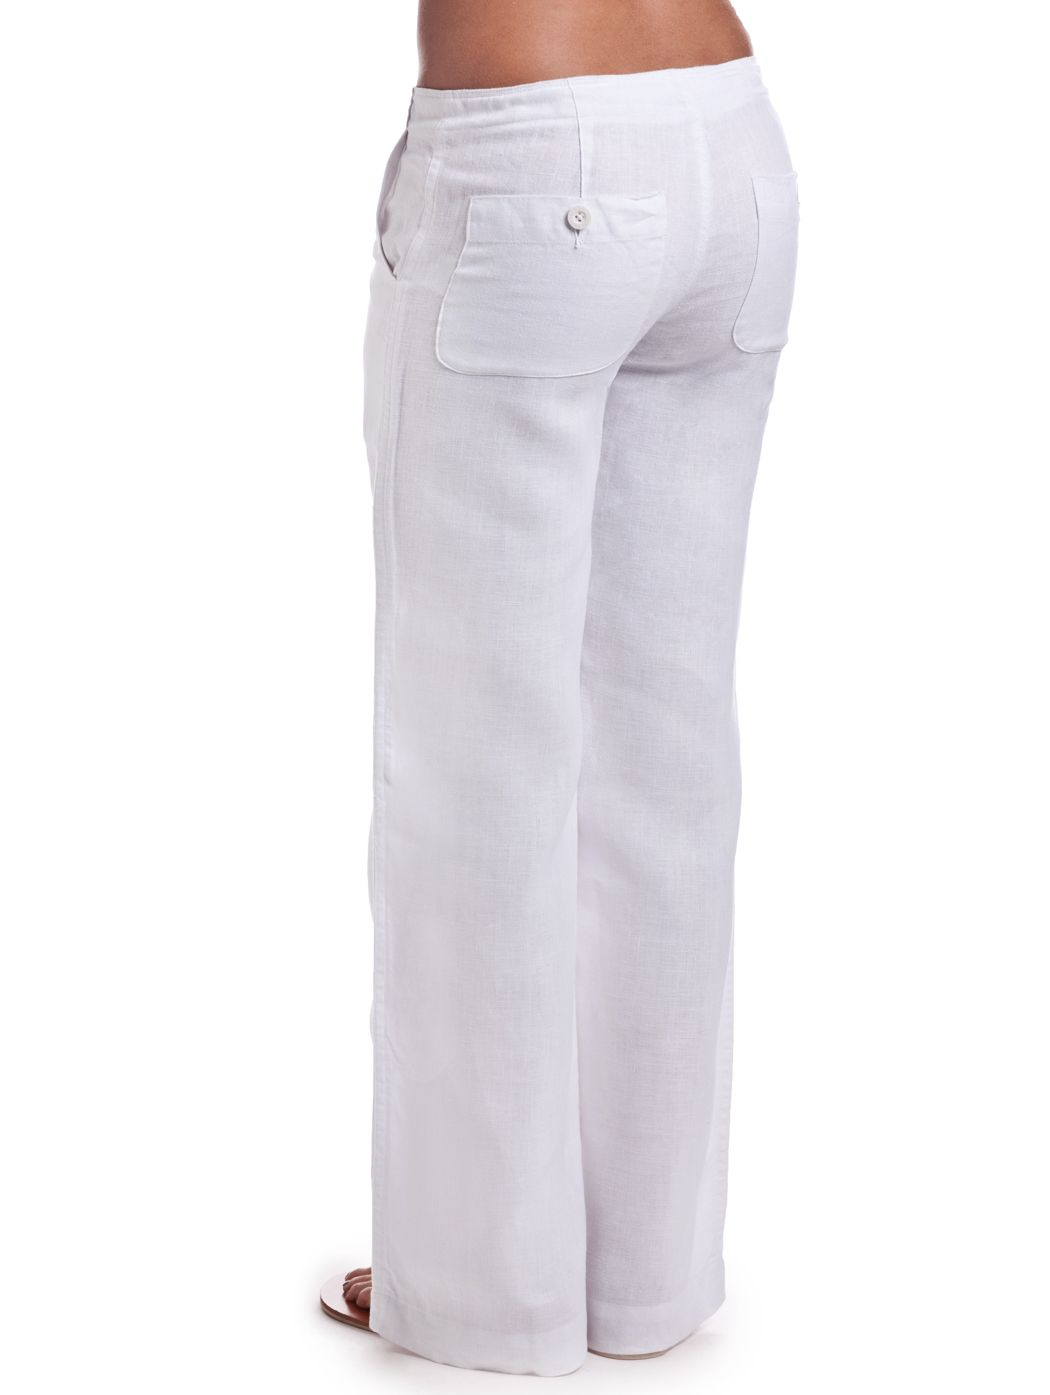 06b0dace72 Women's White Linen Pants | Women's Fashion | Linen pants, White ...